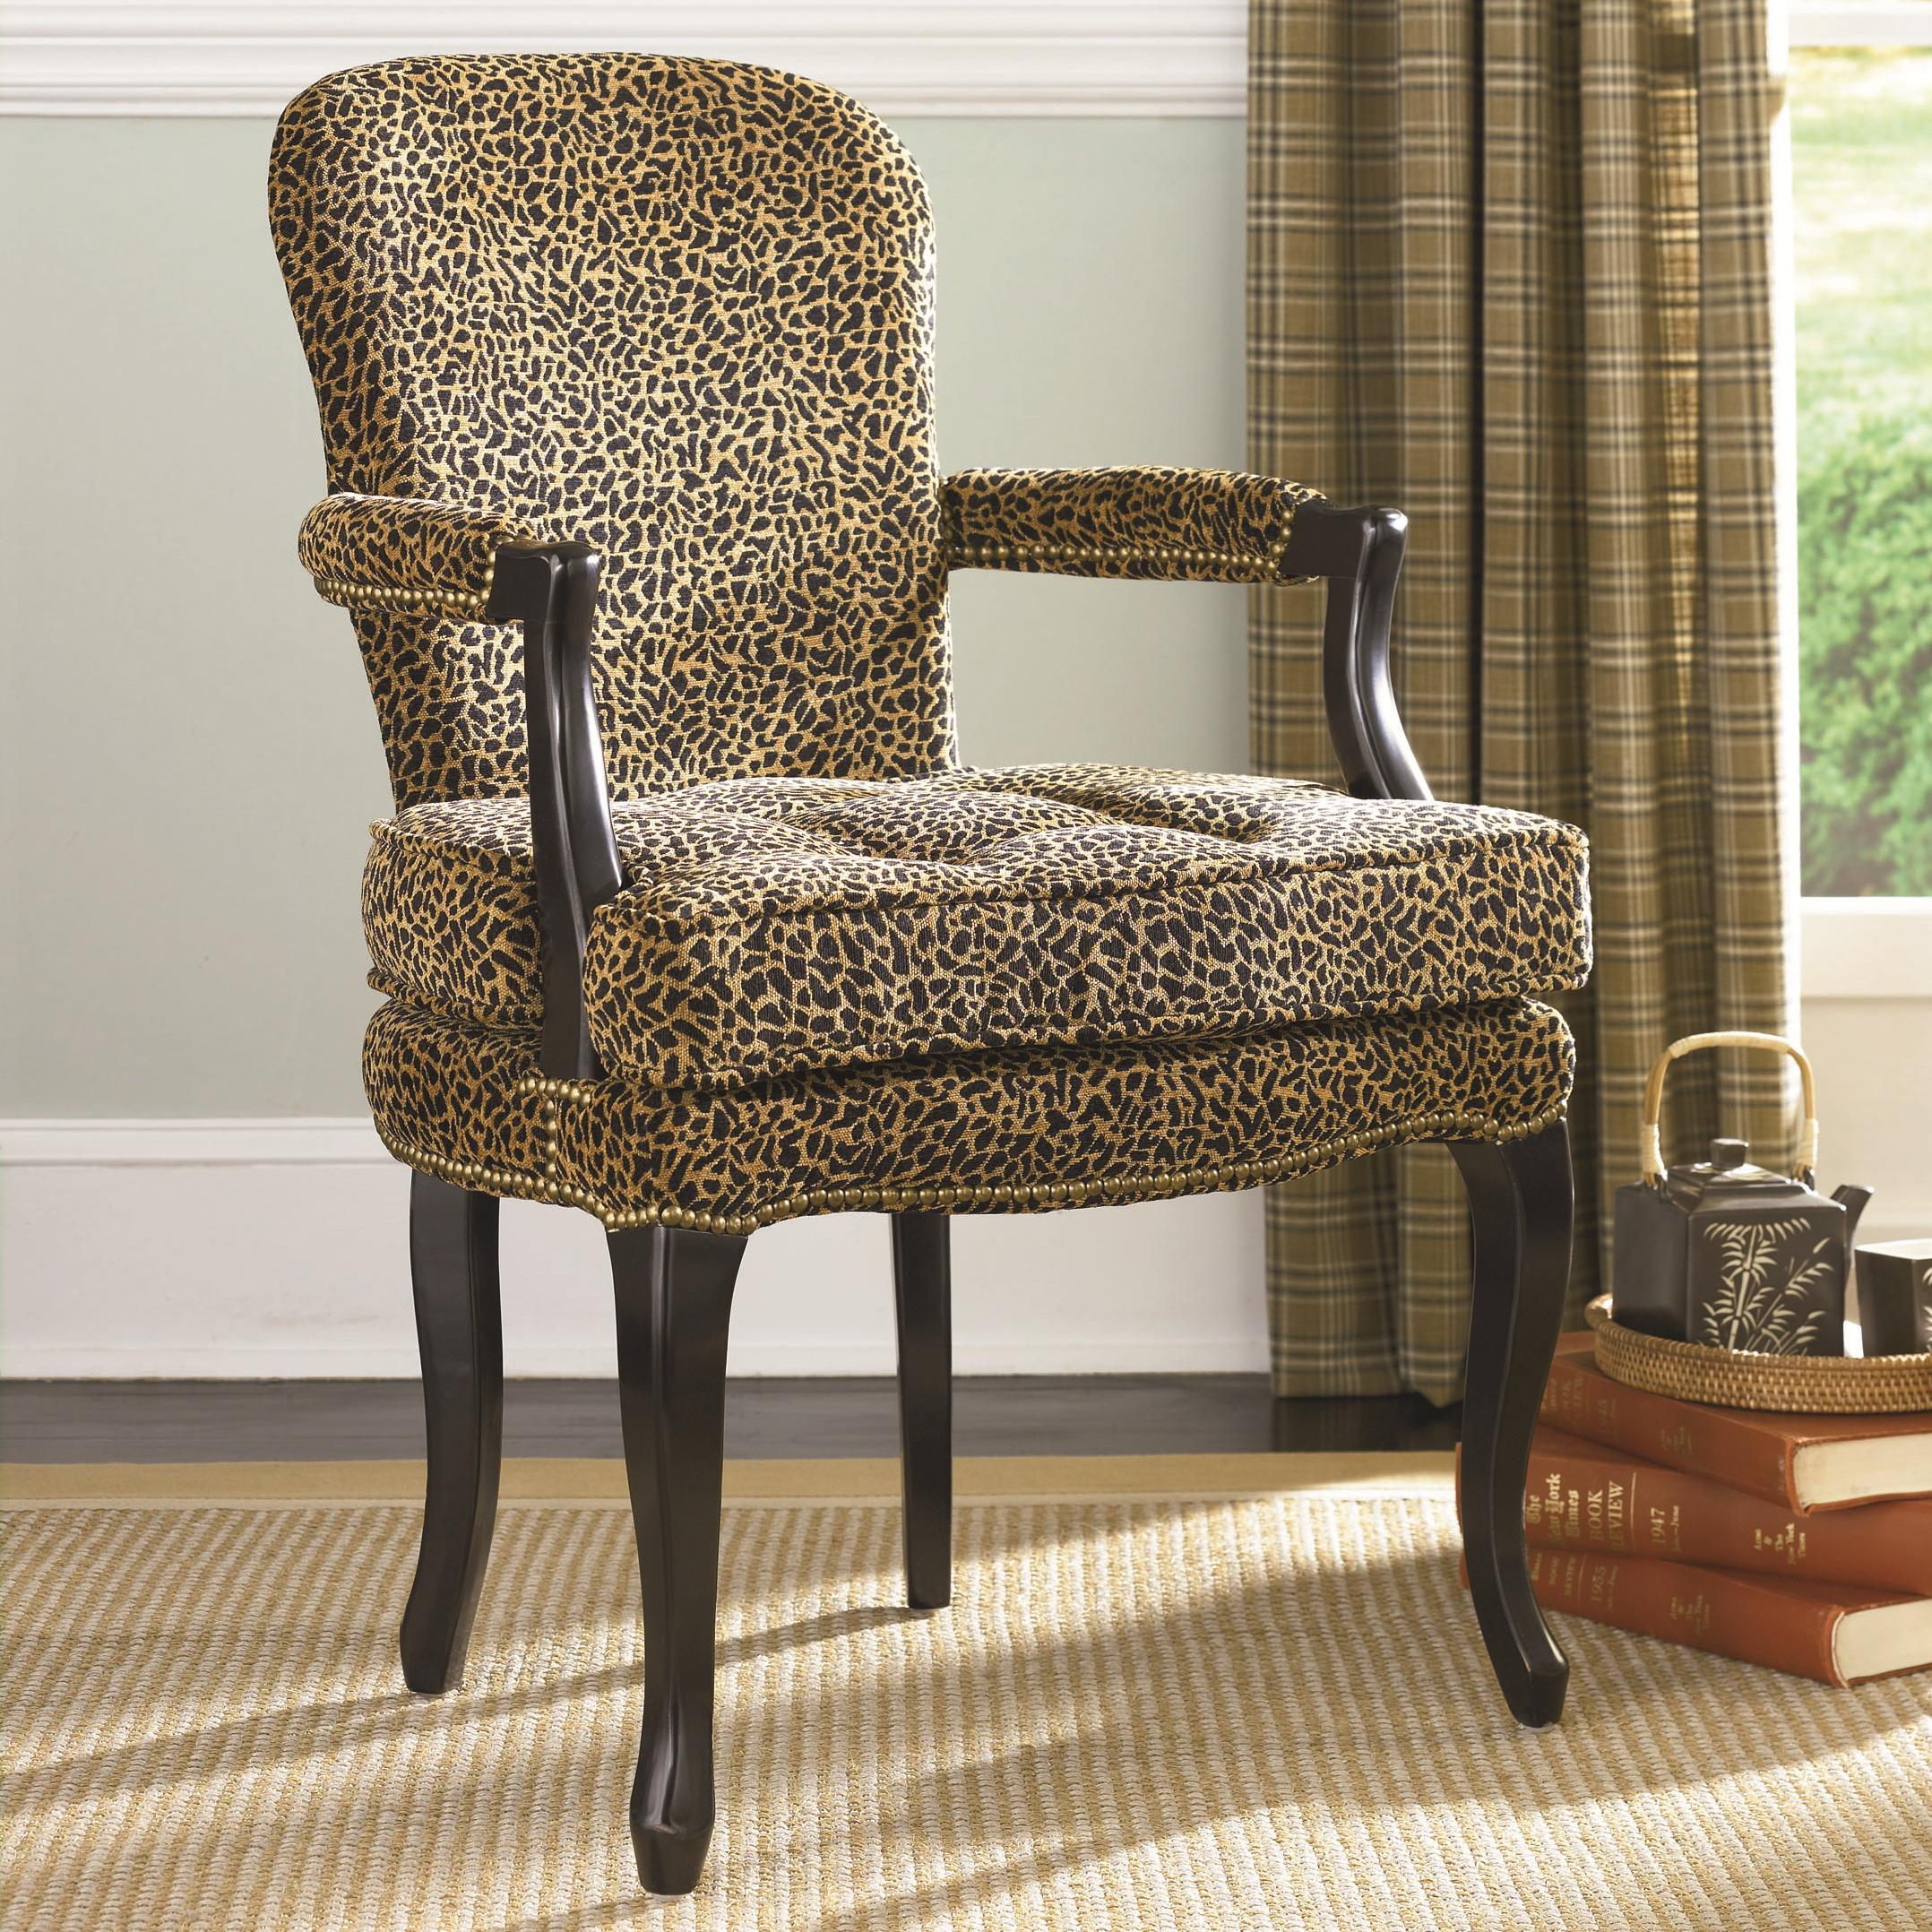 Furniture Living Room Furniture Accent Chair Leopard Print Accent Chair